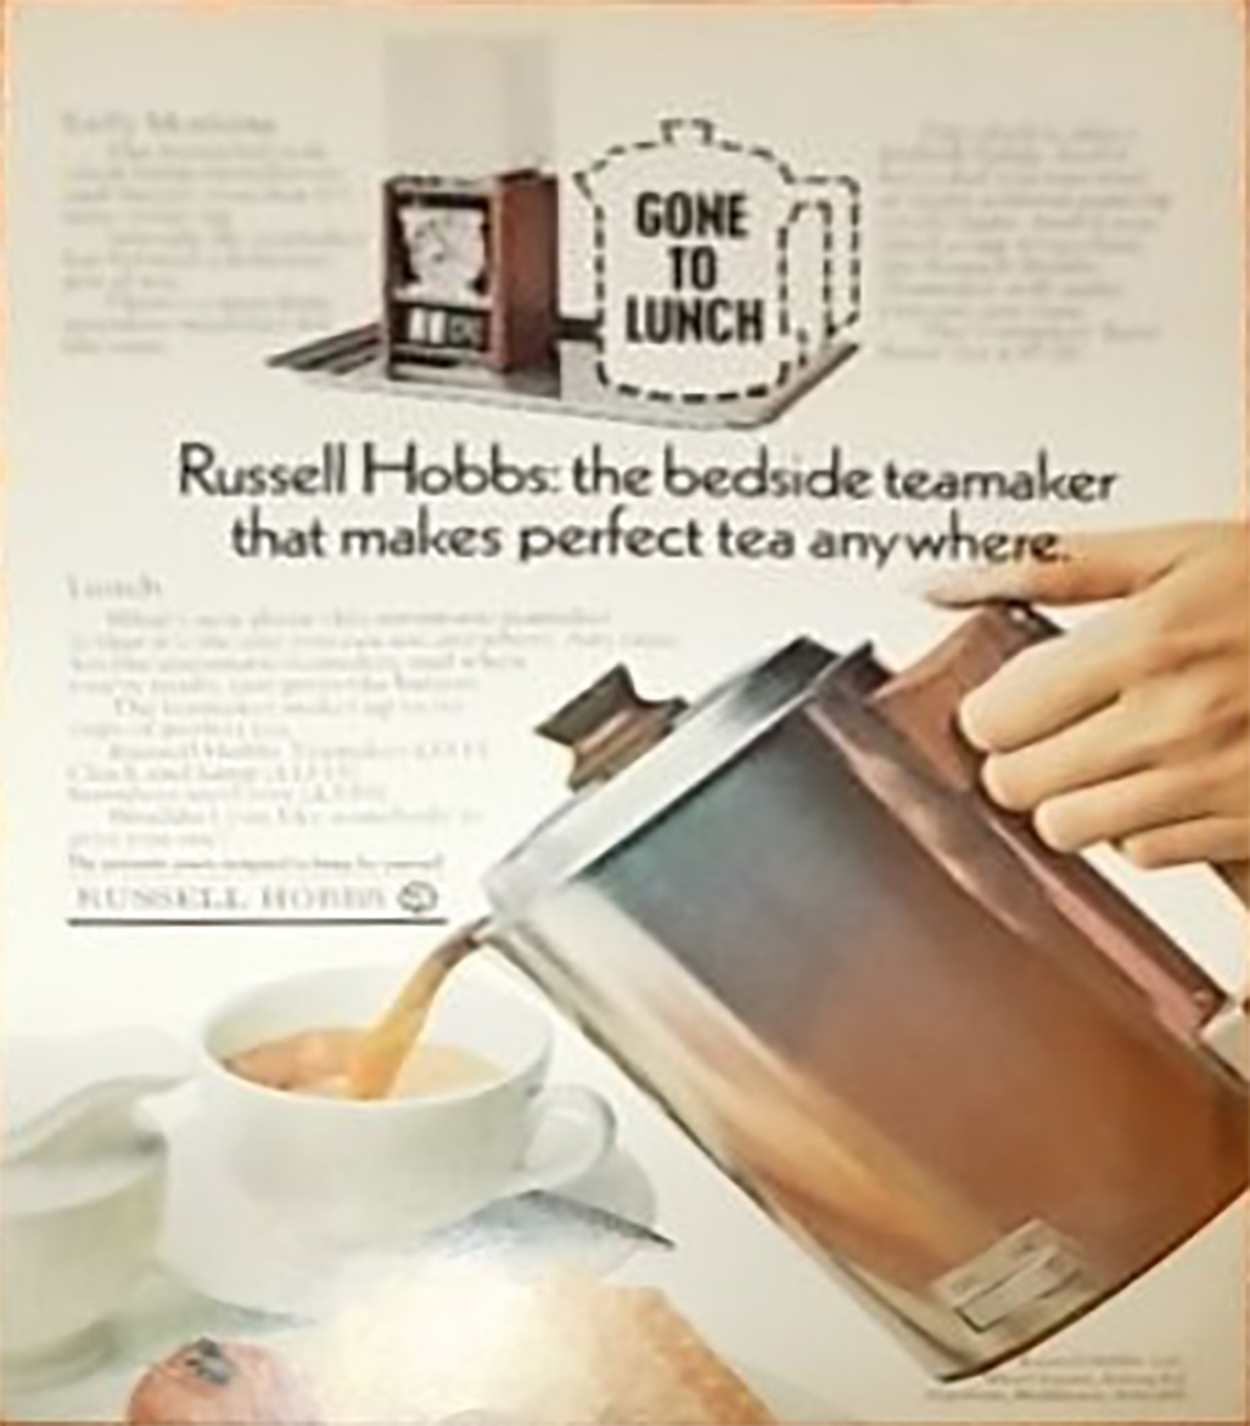 Russell Hobbs 6501 Automatic Electric Teamaker Set Advert 1971